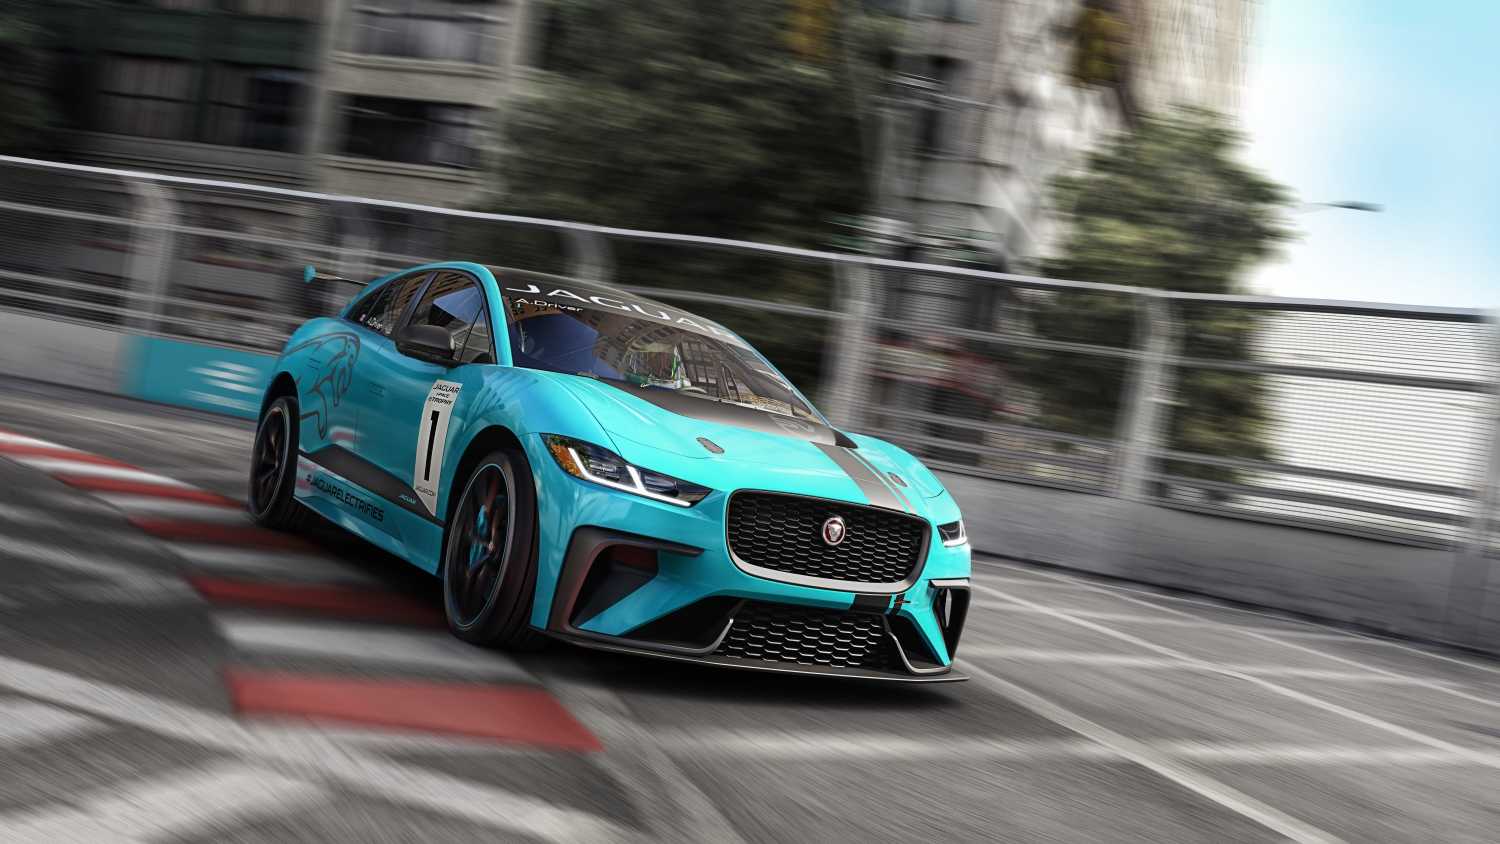 Rahal Latterman Lanigan to join Jaguar I-PACE eTROPHY